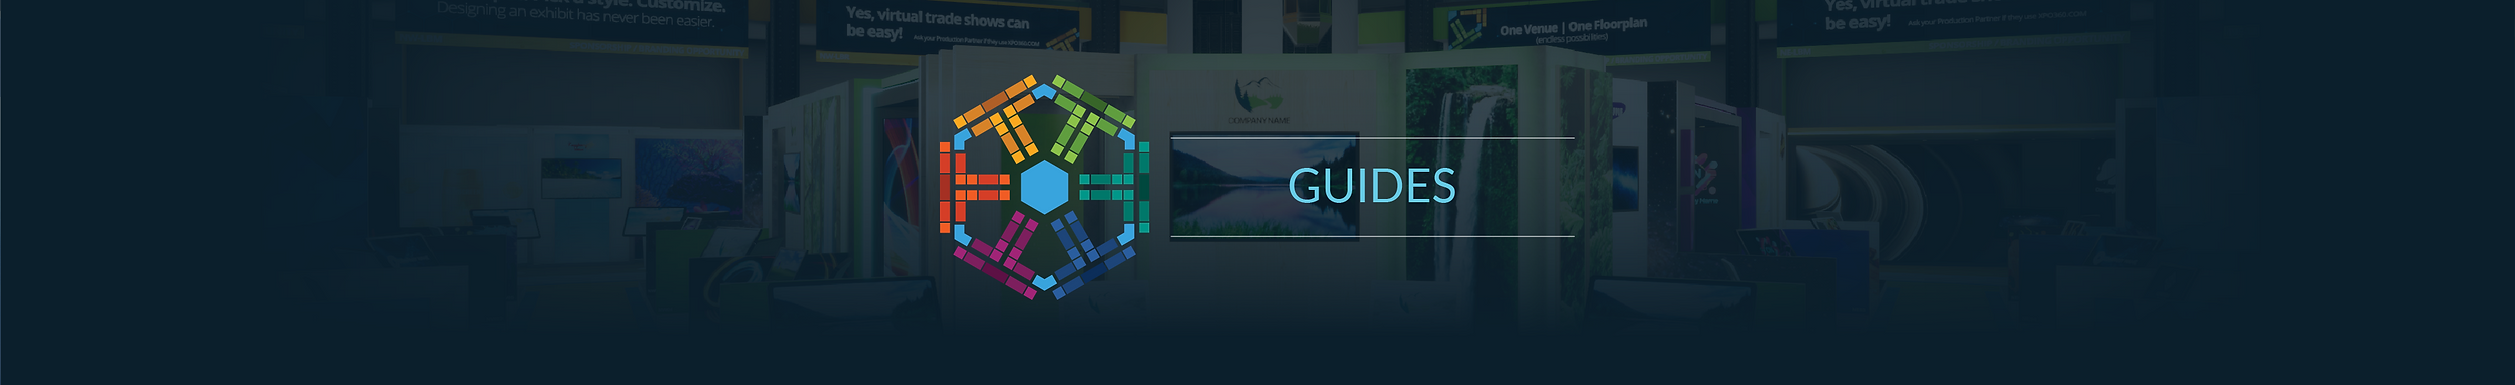 headers_guides-17.png